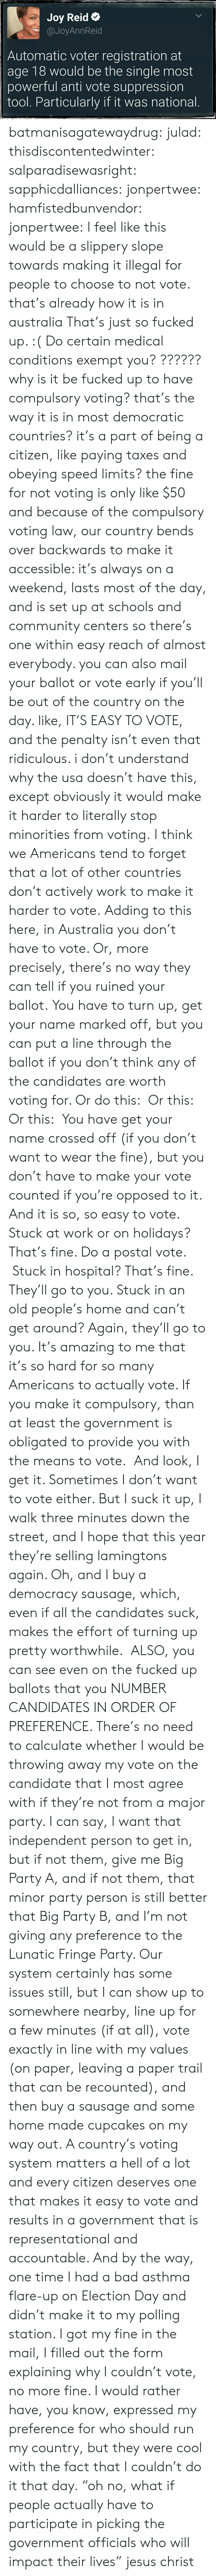 "So Fucked Up: Joy Reid  @JoyAnnReid  Automatic voter registration at  age 18 would be the single most  powerful anti vote suppression  tool. Particularly if it was national batmanisagatewaydrug:  julad:  thisdiscontentedwinter:  salparadisewasright:  sapphicdalliances:  jonpertwee:  hamfistedbunvendor:   jonpertwee: I feel like this would be a slippery slope towards making it illegal for people to choose to not vote. that's already how it is in australia   That's just so fucked up. :( Do certain medical conditions exempt you?  ?????? why is it be fucked up to have compulsory voting? that's the way it is in most democratic countries? it's a part of being a citizen, like paying taxes and obeying speed limits? the fine for not voting is only like $50 and because of the compulsory voting law, our country bends over backwards to make it accessible: it's always on a weekend, lasts most of the day, and is set up at schools and community centers so there's one within easy reach of almost everybody. you can also mail your ballot or vote early if you'll be out of the country on the day. like, IT'S EASY TO VOTE, and the penalty isn't even that ridiculous. i don't understand why the usa doesn't have this, except obviously it would make it harder to literally stop minorities from voting.  I think we Americans tend to forget that a lot of other countries don't actively work to make it harder to vote.  Adding to this here, in Australia you don't have to vote. Or, more precisely, there's no way they can tell if you ruined your ballot. You have to turn up, get your name marked off, but you can put a line through the ballot if you don't think any of the candidates are worth voting for. Or do this:  Or this:   Or this:  You have get your name crossed off (if you don't want to wear the fine), but you don't have to make your vote counted if you're opposed to it.  And it is so, so easy to vote. Stuck at work or on holidays? That's fine. Do a postal vote.  Stuck in hospital? That's fine. They'll go to you. Stuck in an old people's home and can't get around? Again, they'll go to you. It's amazing to me that it's so hard for so many Americans to actually vote. If you make it compulsory, than at least the government is obligated to provide you with the means to vote.  And look, I get it. Sometimes I don't want to vote either. But I suck it up, I walk three minutes down the street, and I hope that this year they're selling lamingtons again. Oh, and I buy a democracy sausage, which, even if all the candidates suck, makes the effort of turning up pretty worthwhile.   ALSO, you can see even on the fucked up ballots that you NUMBER  CANDIDATES IN ORDER OF PREFERENCE. There's no need to calculate whether I would be throwing away my vote on the candidate that I most agree with if they're not from a major party. I can say, I want that independent person to get in, but if not them, give me Big Party A, and if not them, that minor party person is still better that Big Party B, and I'm not giving any preference to the Lunatic Fringe Party.  Our system certainly has some issues still, but I can show up to somewhere nearby, line up for a few minutes (if at all), vote exactly in line with my values (on paper, leaving a paper trail that can be recounted), and then buy a sausage and some home made cupcakes on my way out.  A country's voting system matters a hell of a lot and every citizen deserves one that makes it easy to vote and results in a government that is representational and accountable.  And by the way, one time I had a bad asthma flare-up on Election Day and didn't make it to my polling station. I got my fine in the mail, I filled out the form explaining why I couldn't vote, no more fine. I would rather have, you know, expressed my preference for who should run my country, but they were cool with the fact that I couldn't do it that day.  ""oh no, what if people actually have to participate in picking the government officials who will impact their lives"" jesus christ"